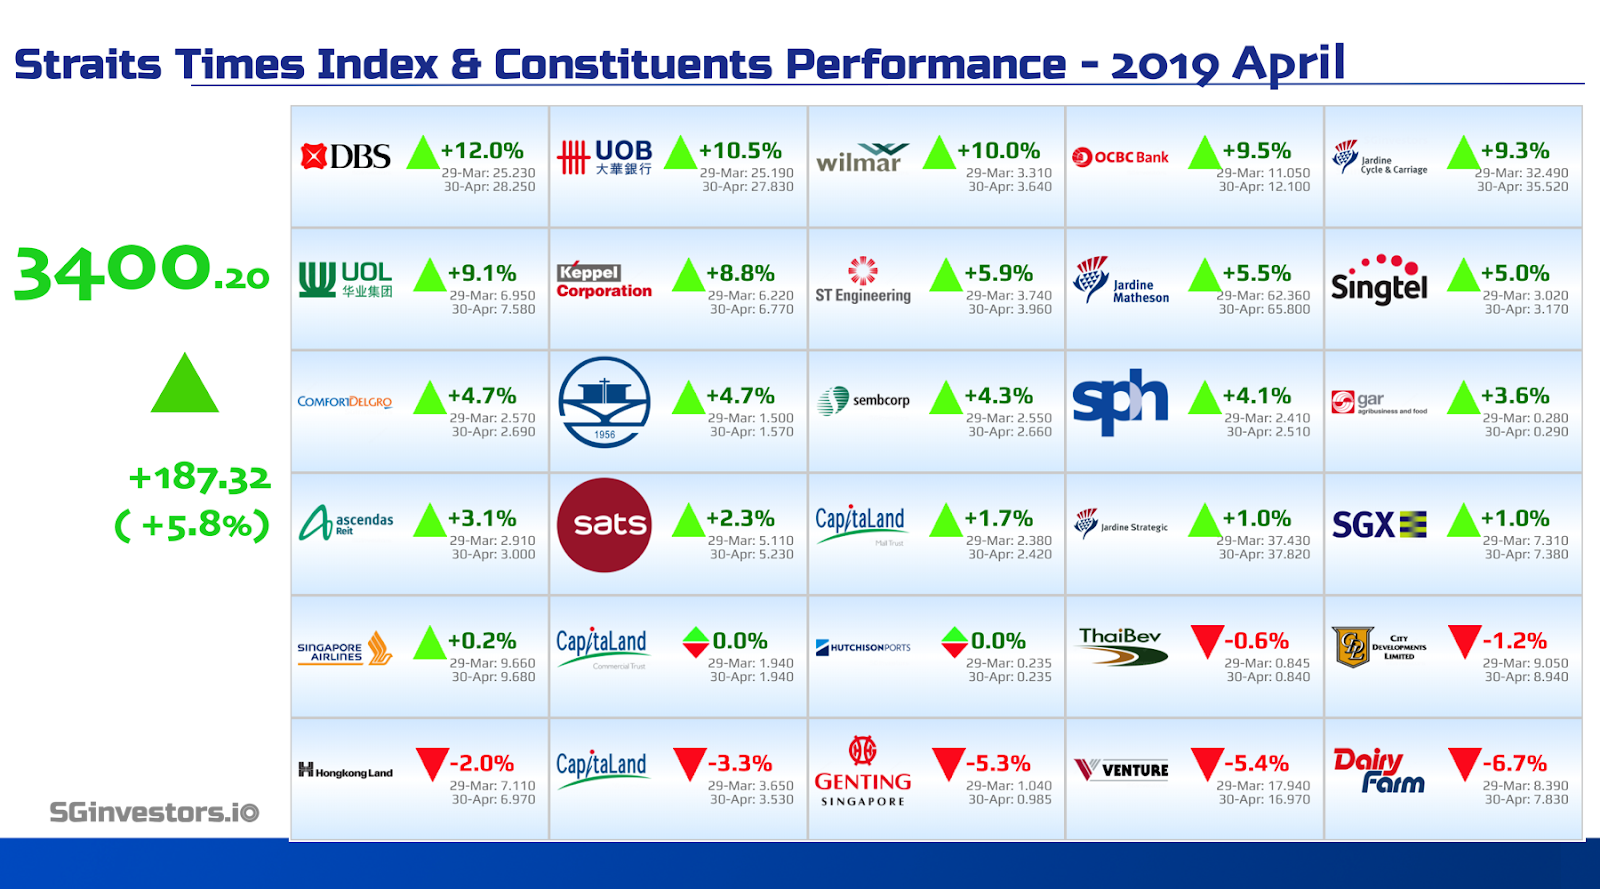 Performance of Straits Times Index (STI) Constituents in April 2019